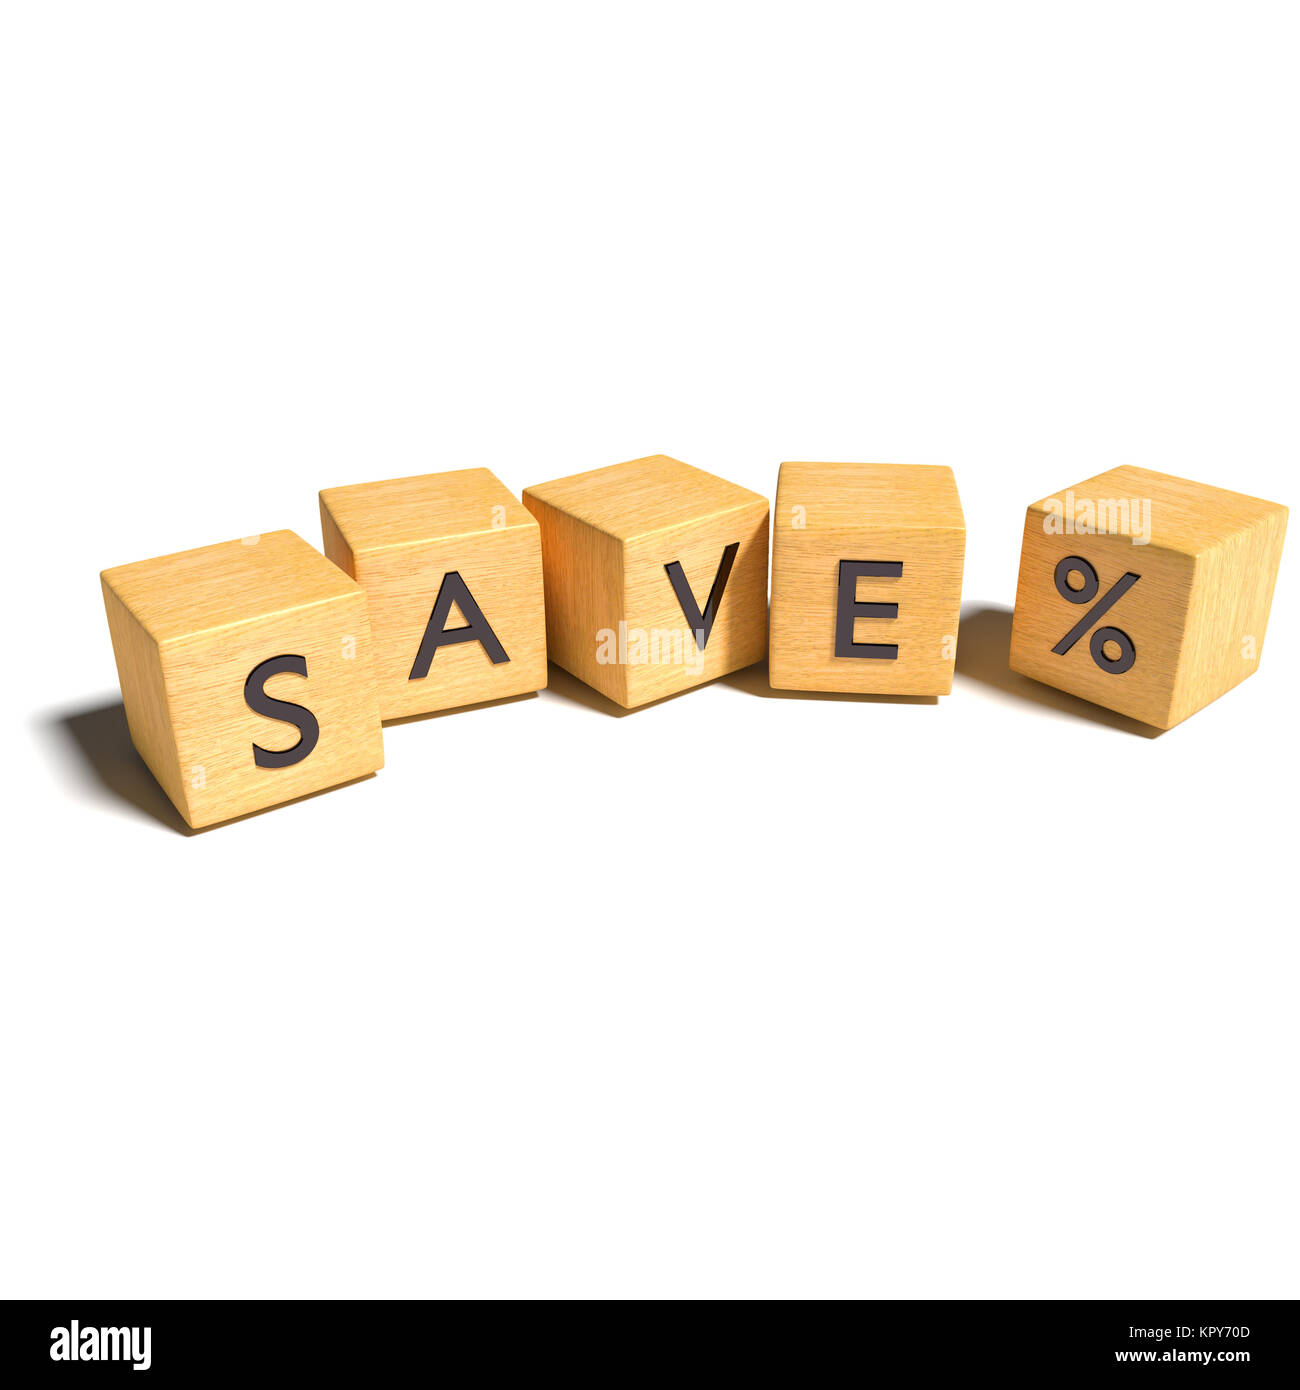 save cubes with percents - Stock Image